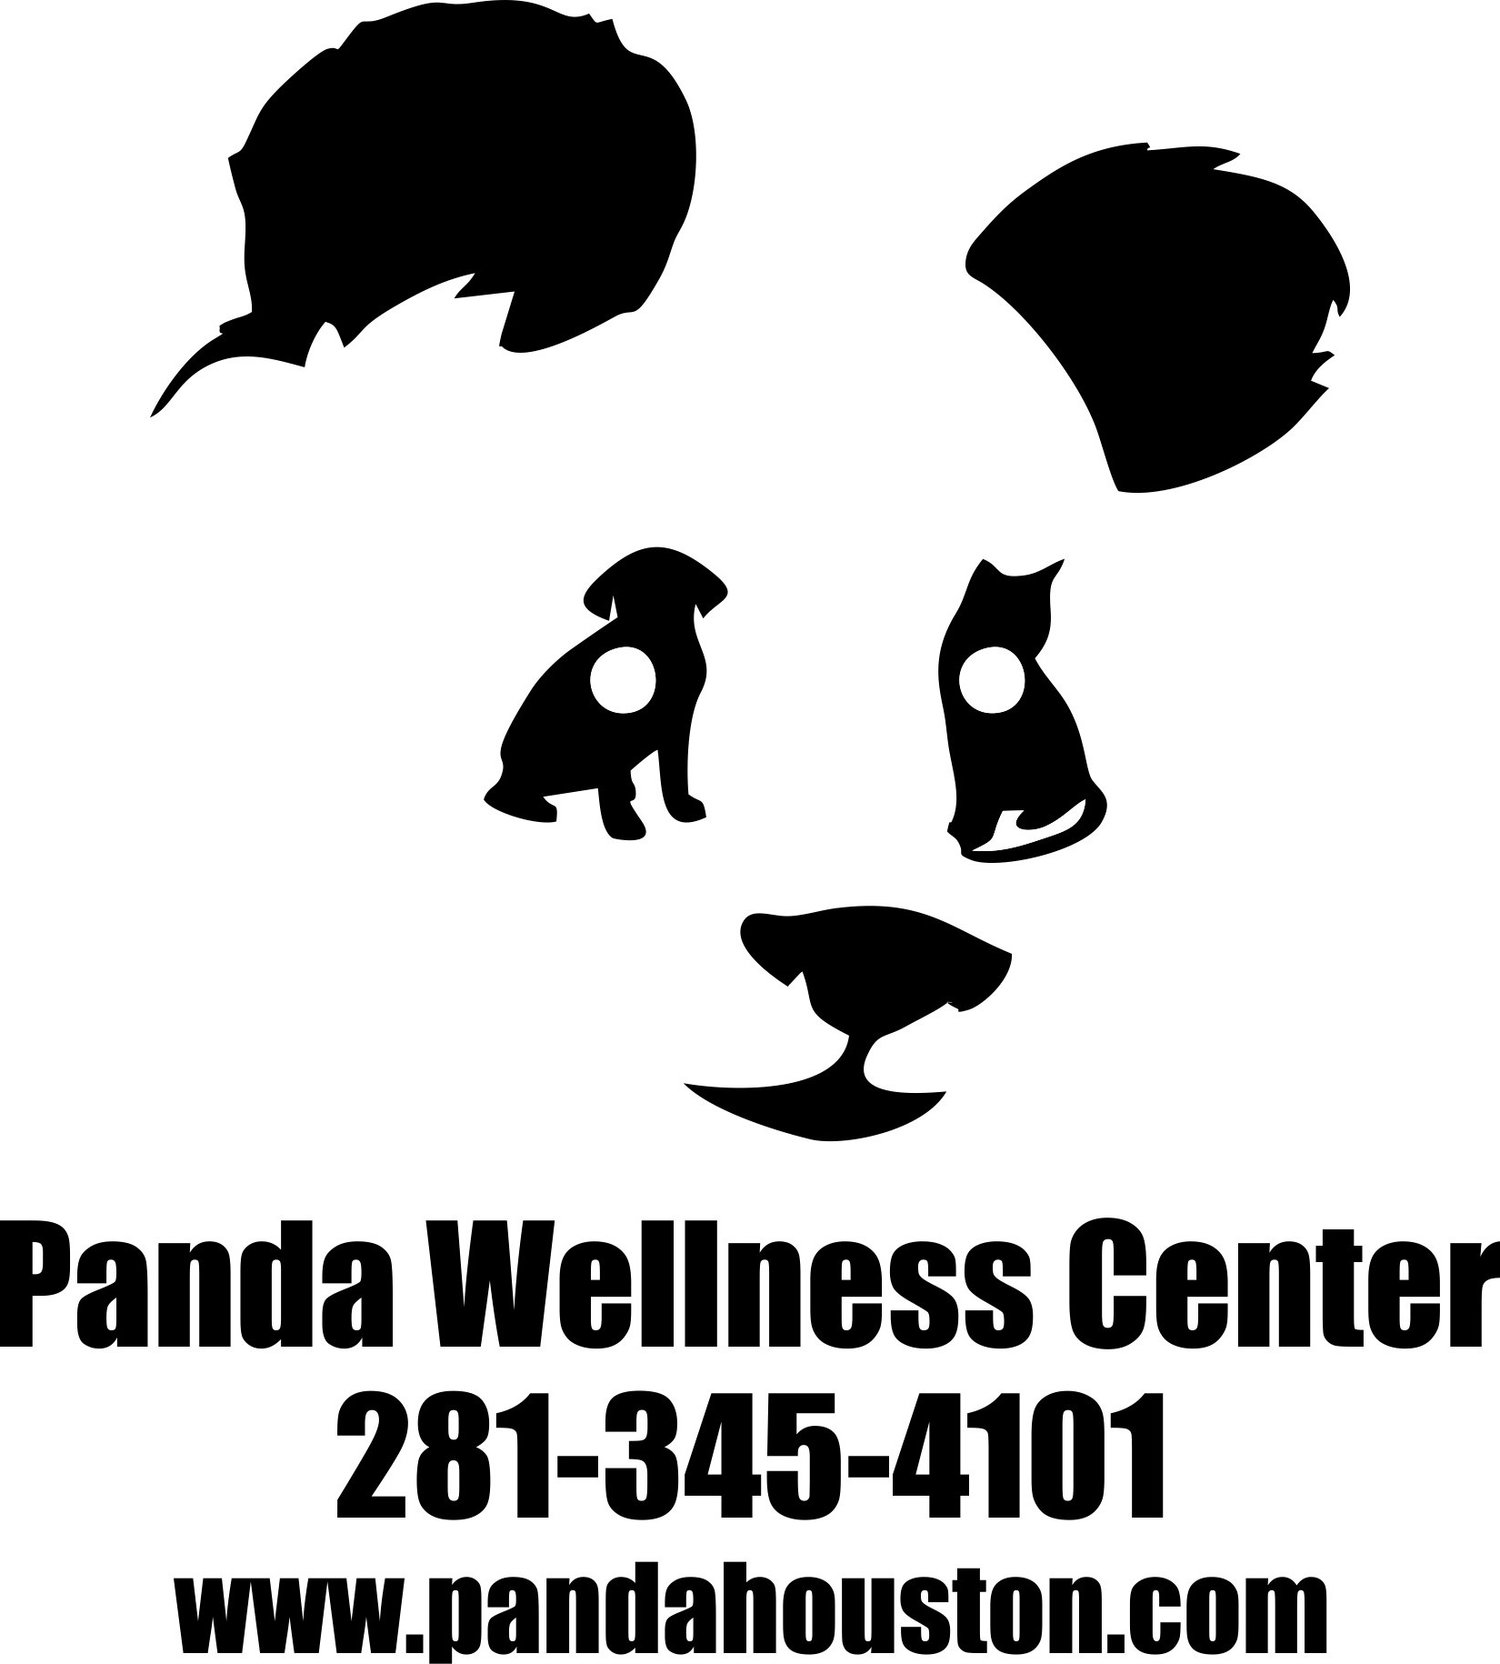 Panda Wellness Center - (281) 345-4101